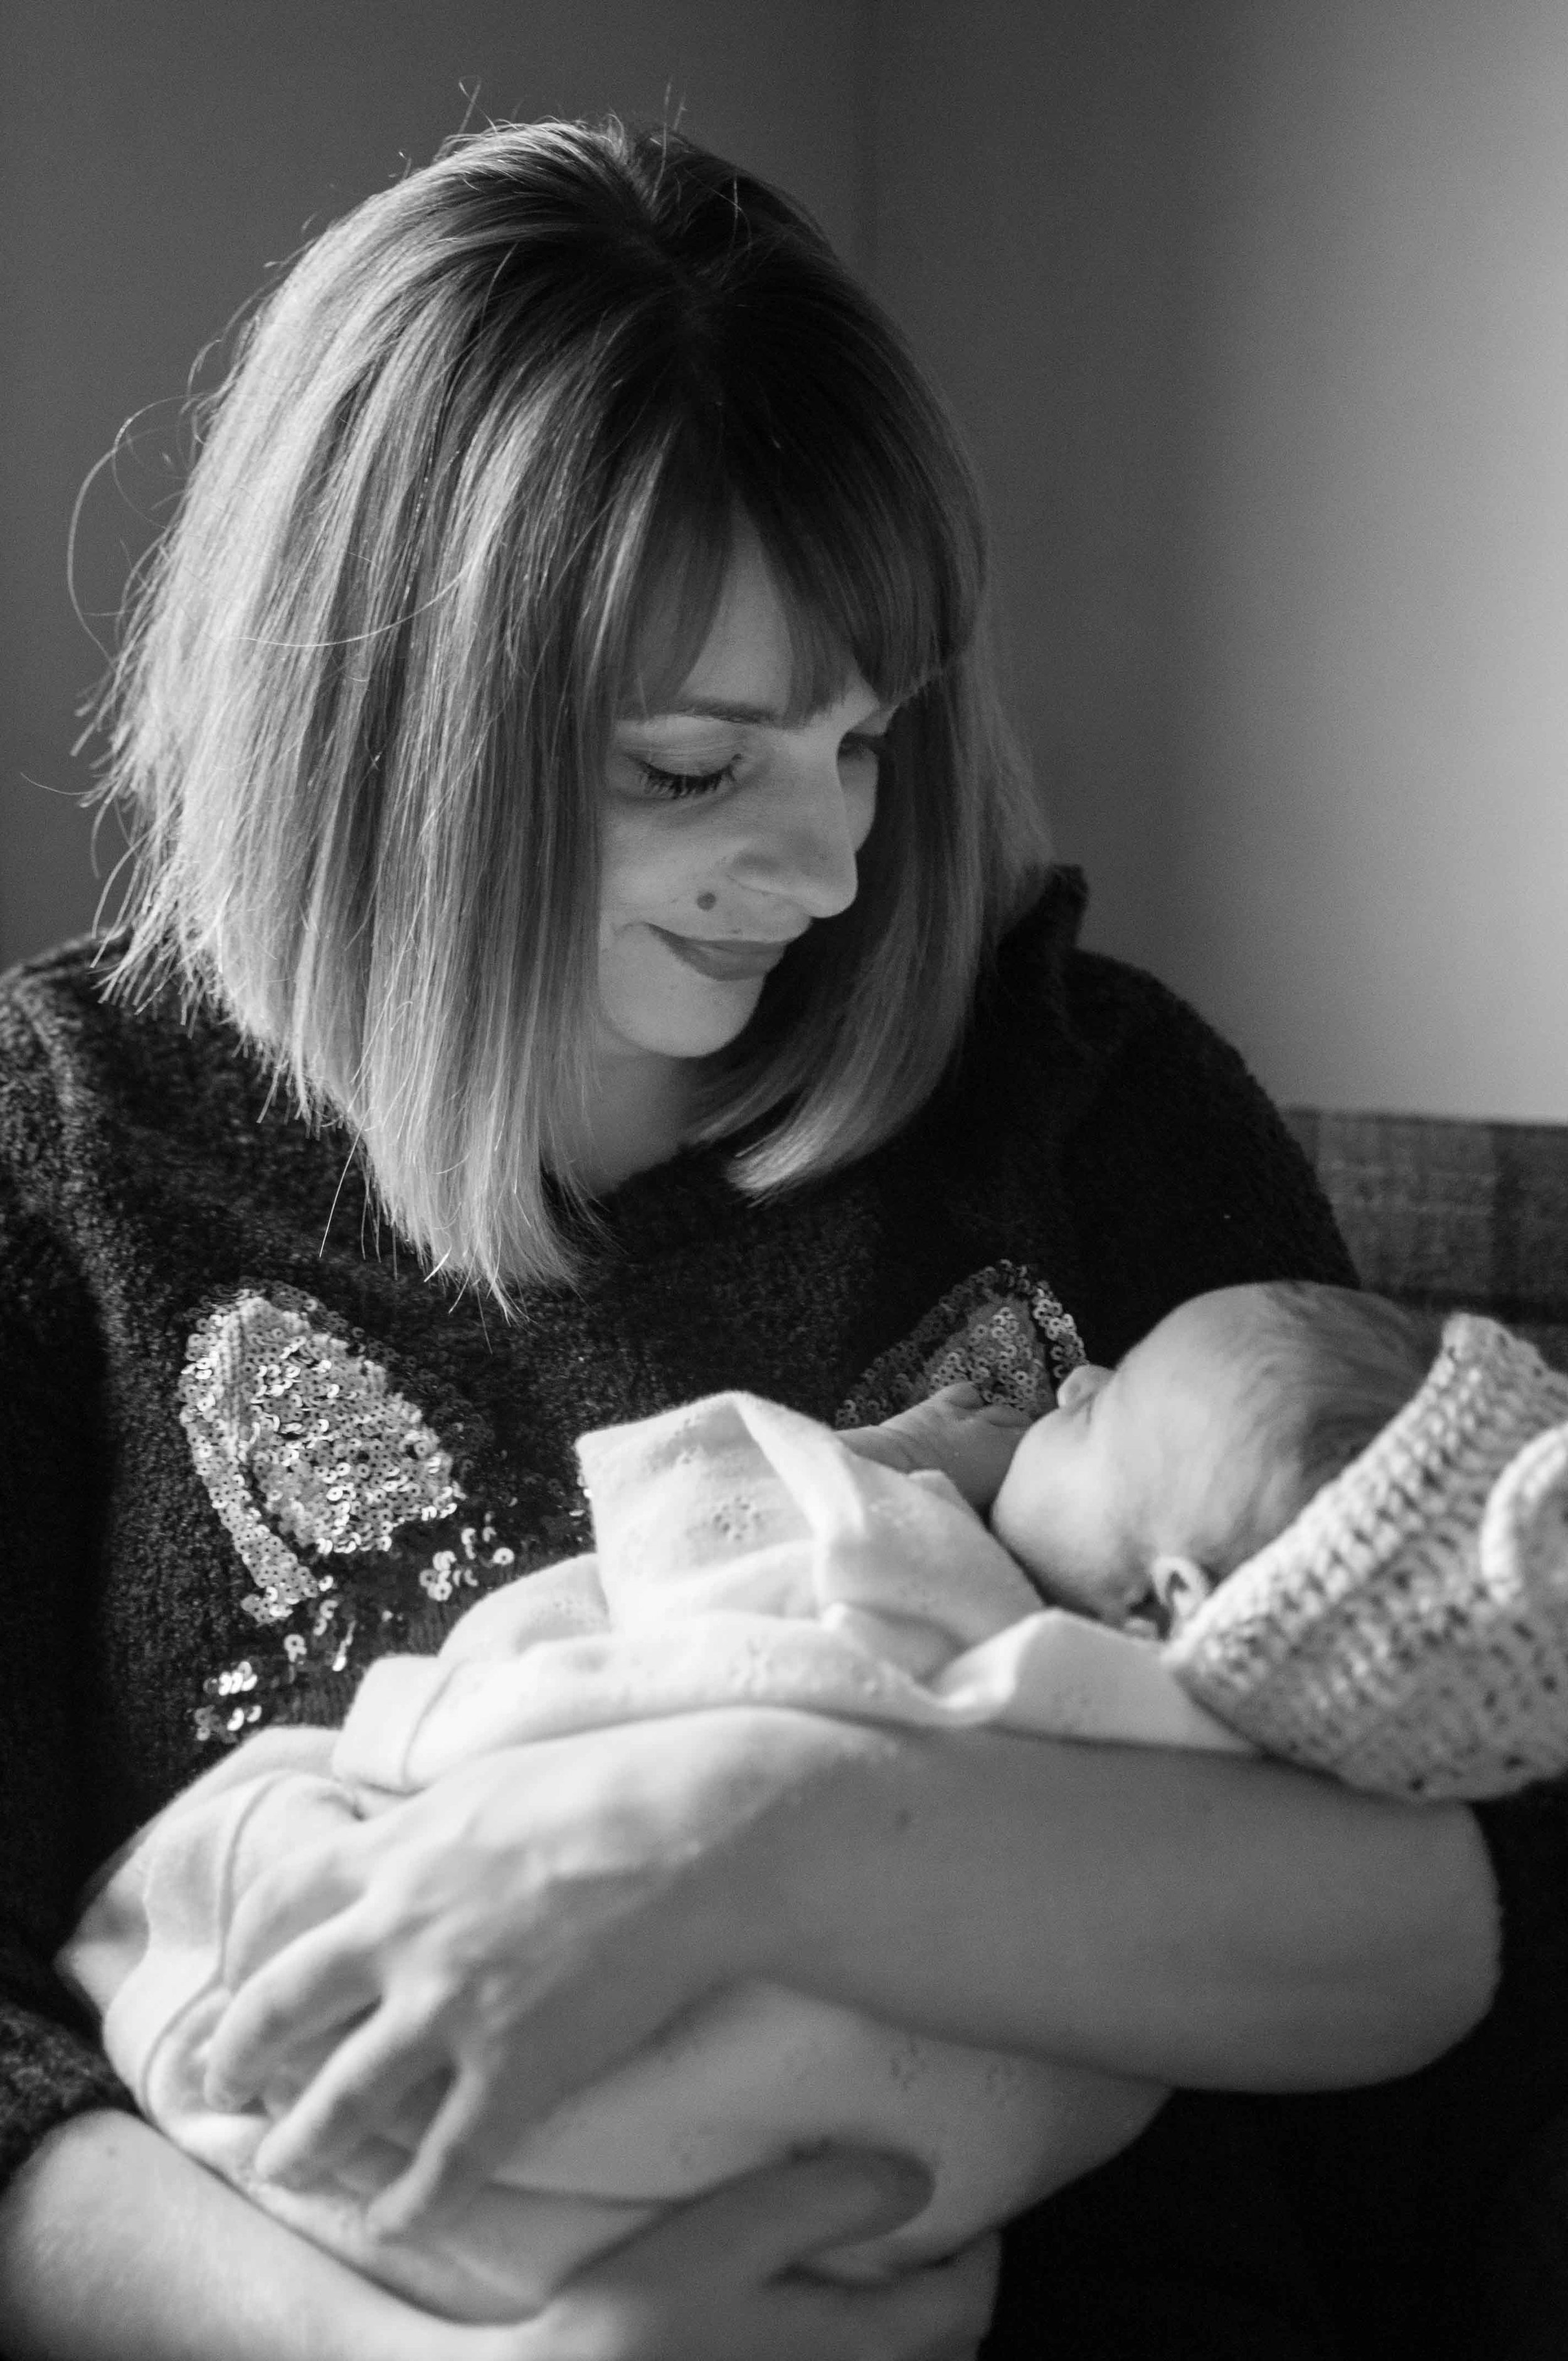 Newborn, Baby and Bump Photo Shoots - Click here to find out prices and information about my baby photography